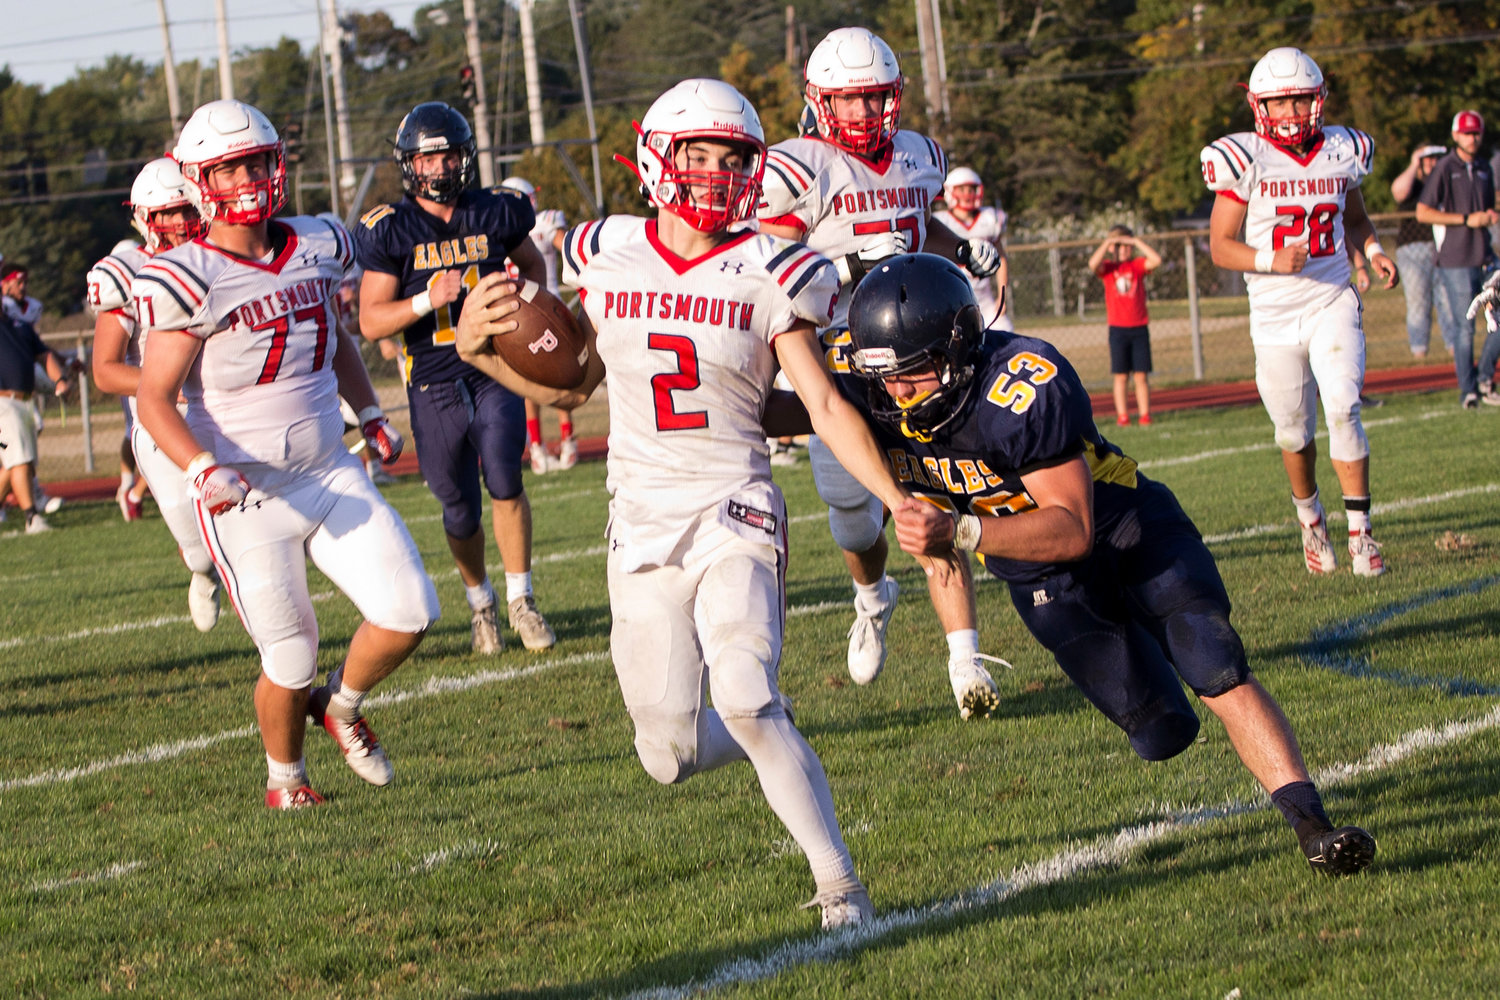 Benny Hurd stays on his feet, gaining a few more yards for the Patriots, as Barrington's Andrew Prete attempts to stop him.